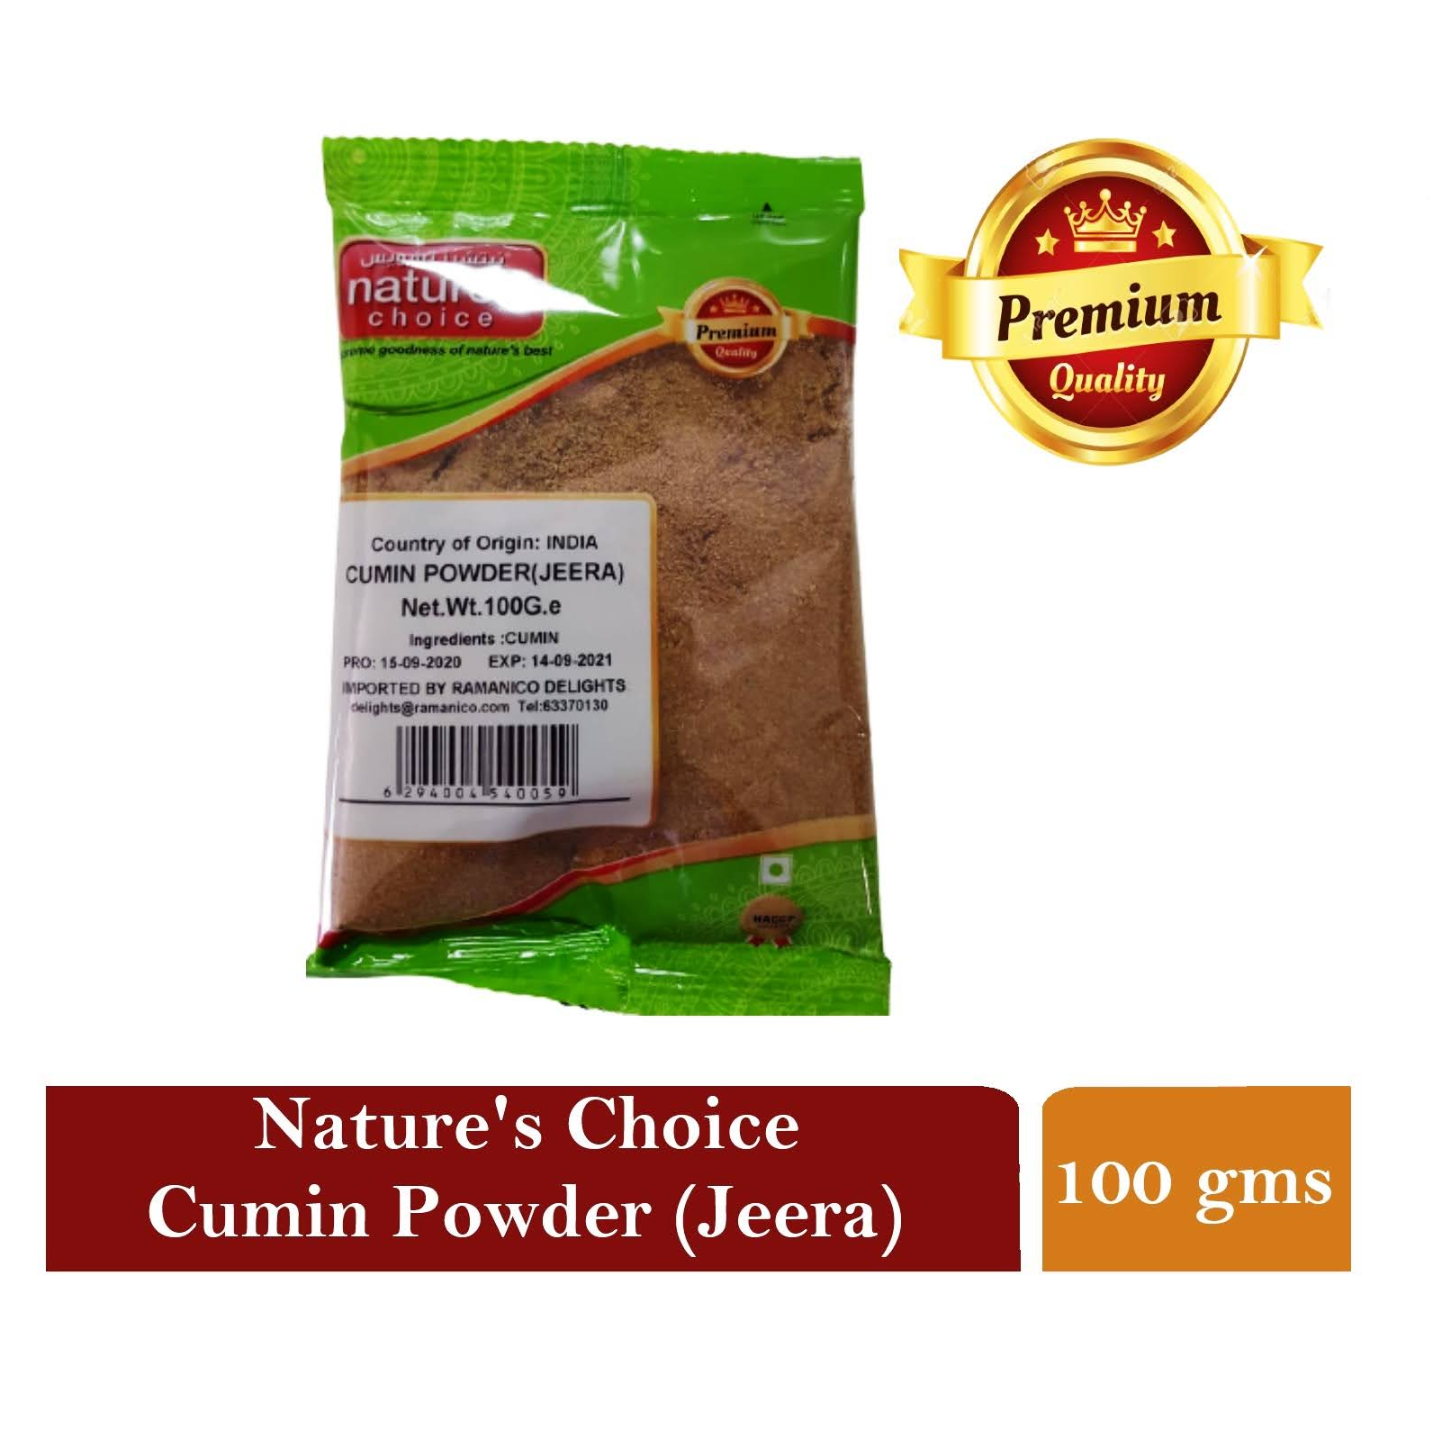 NATURES CHOICE PREMIUM QUALITY CUMIN POWDER 100G